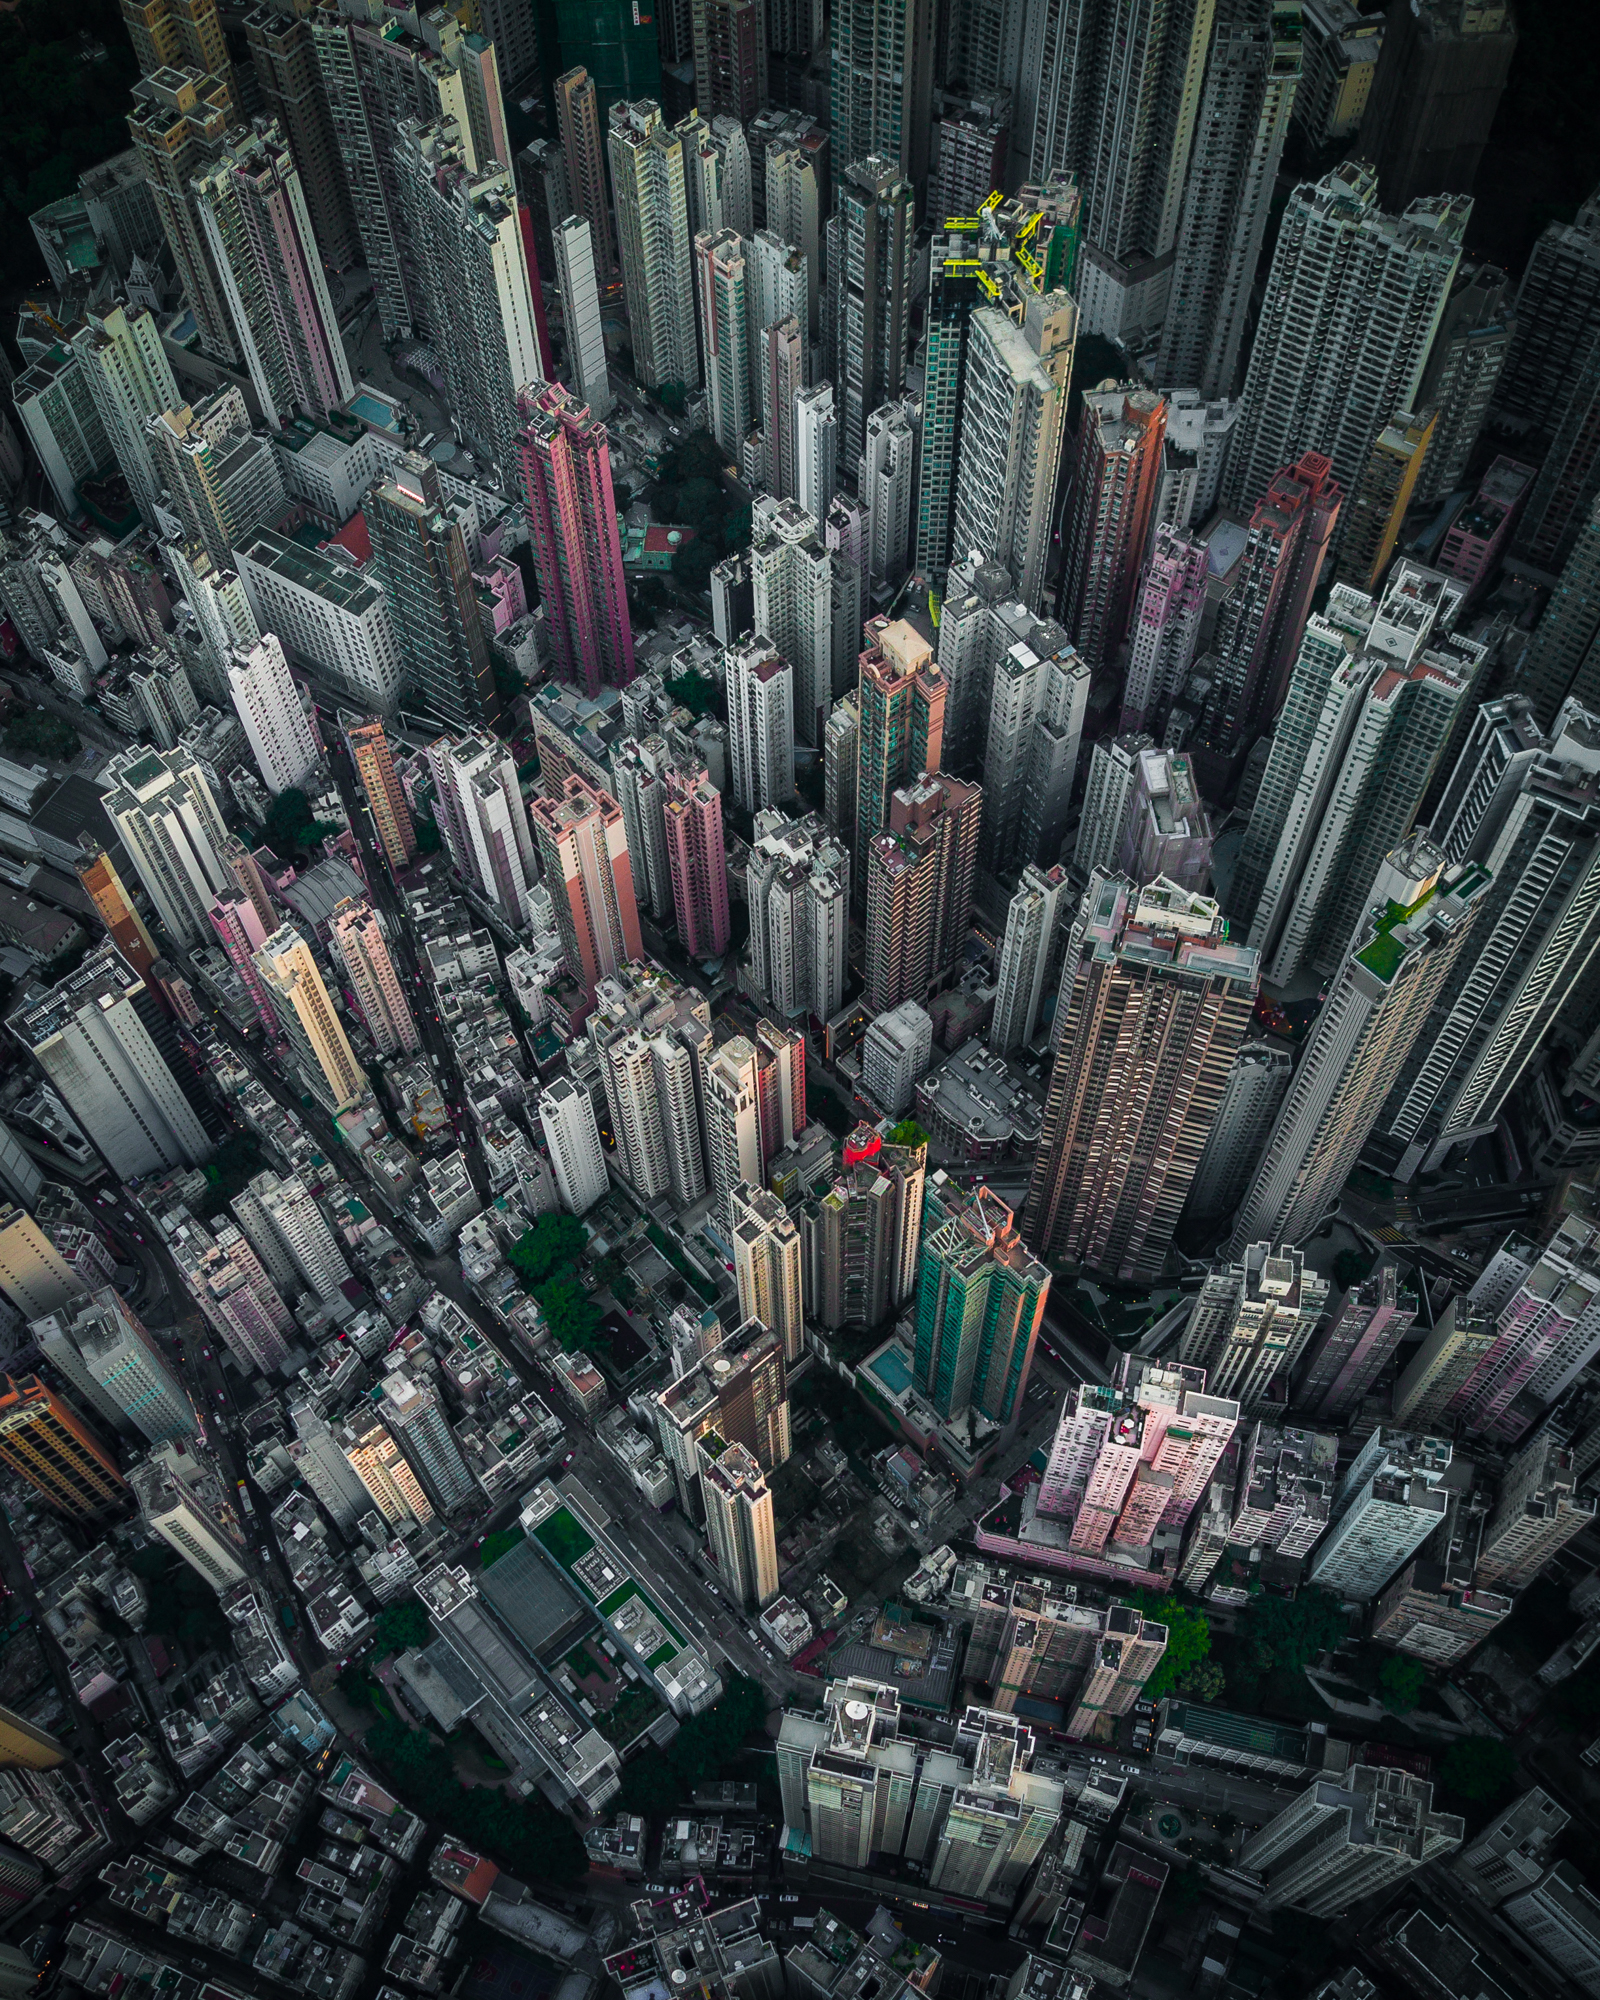 Nightsnlights_Above_HongKong01.jpg